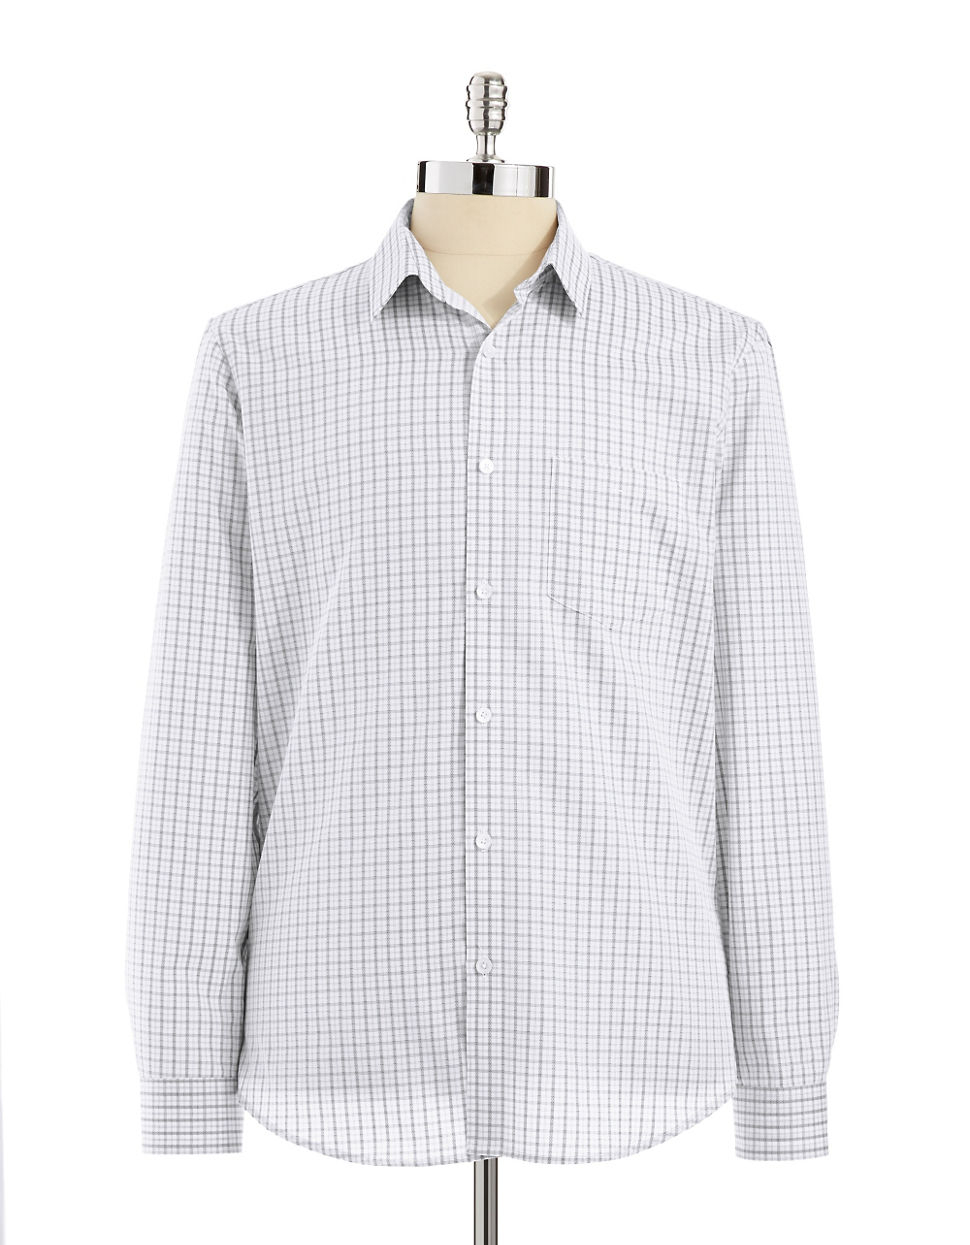 Calvin klein slim fit button down shirt in white for men for Calvin klein athletic fit dress shirt